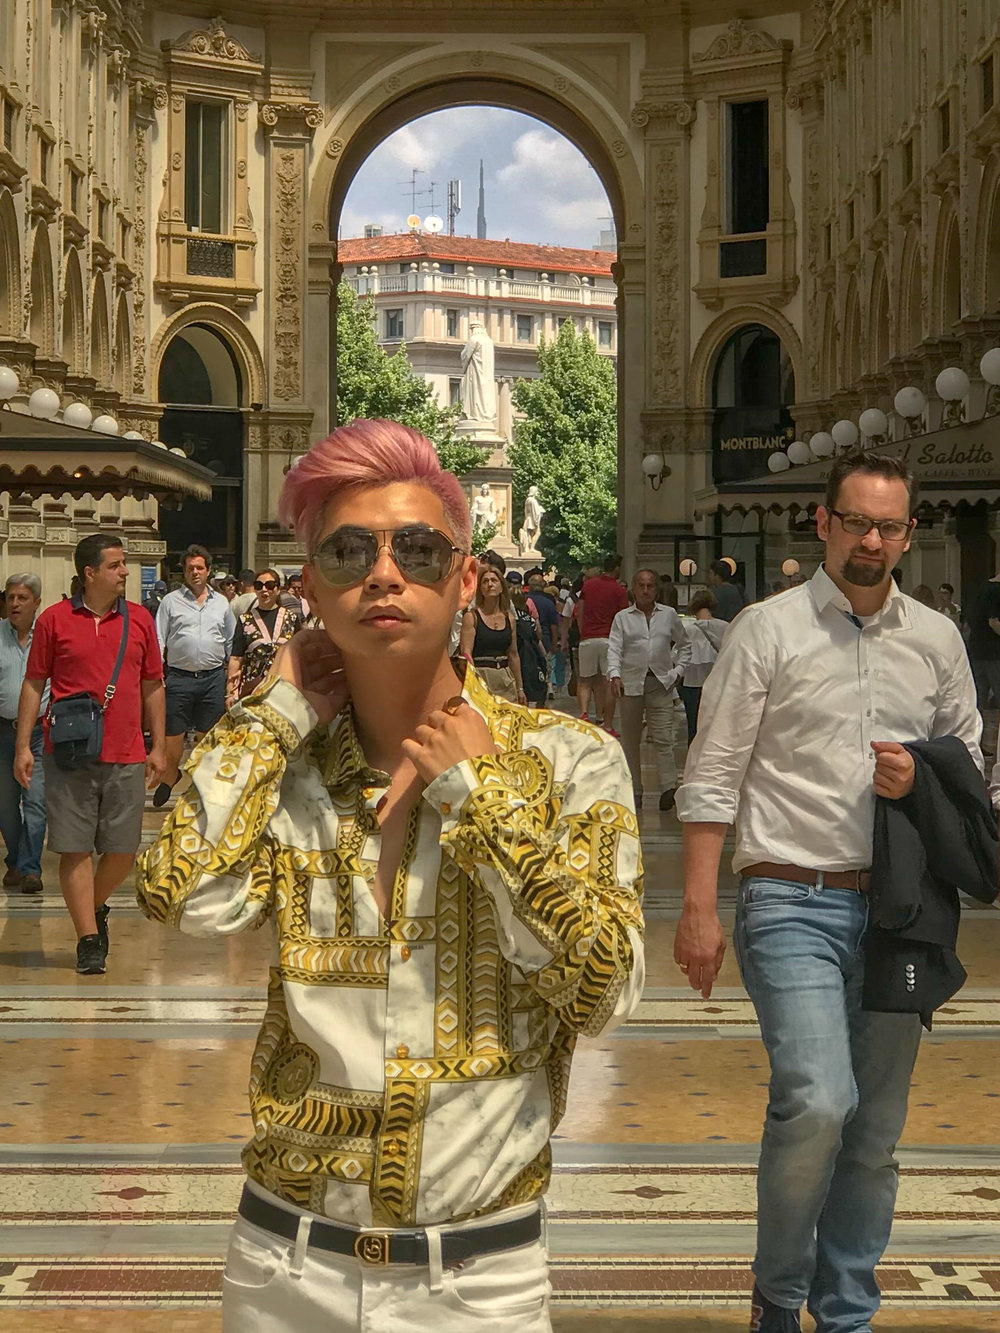 MYBELONGING-TOMMYLEI-TOP-MENS-BLOGGER-INFLUENCER-CREATIVE-AT-THE-DUOMO-MILAN-TRAVEL-PHOTOGRAPHY-VERSACE-GUCCI-PRADA-STREETSTYLE11.jpg